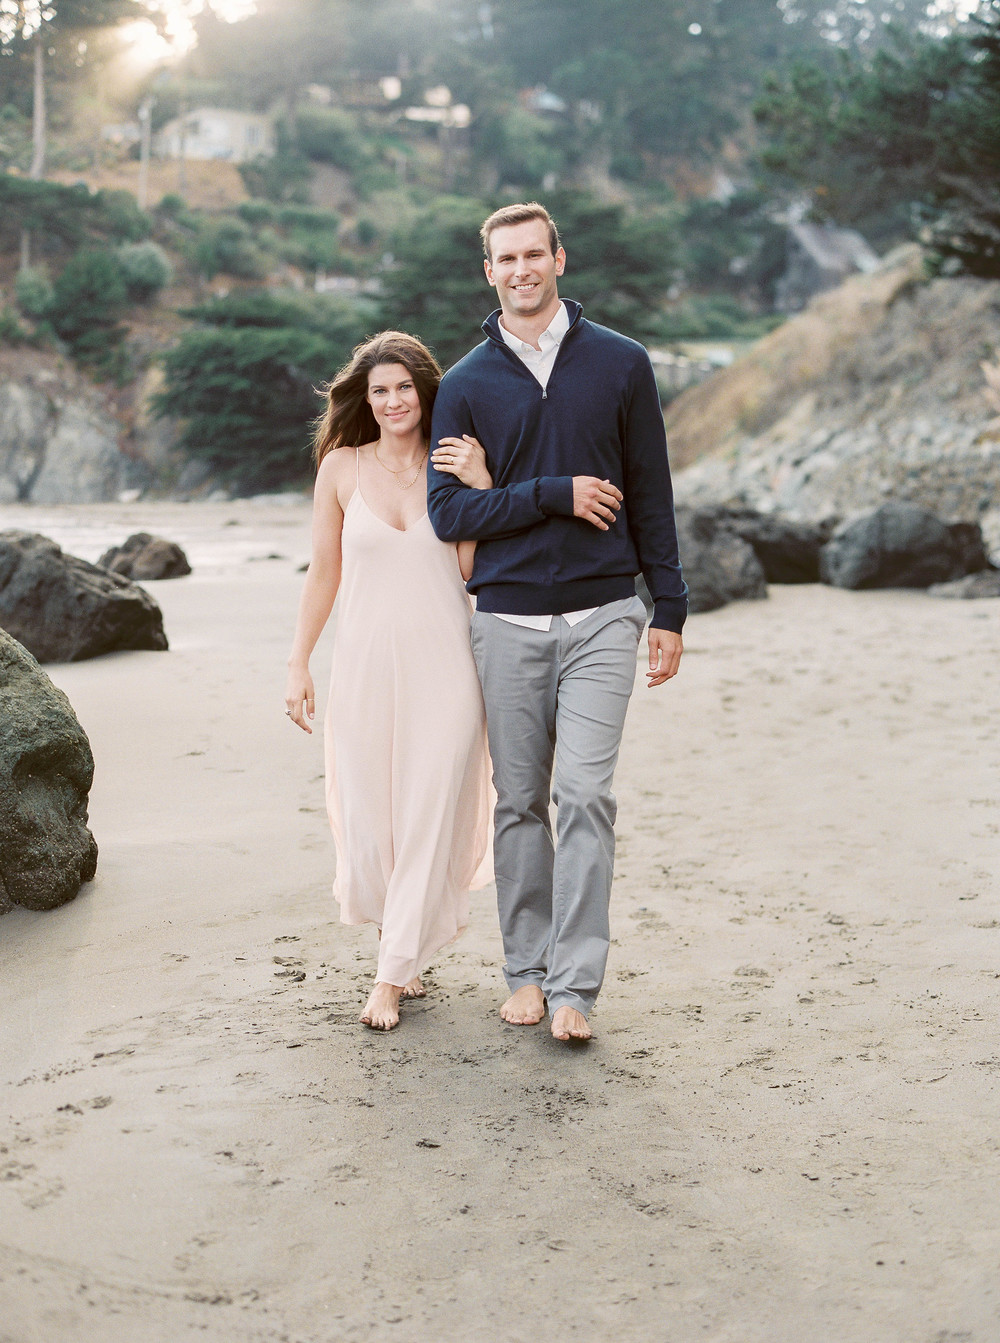 Meghan Mehan Photography - Fine Art Film Wedding Photography - San Francisco | Napa | Sonoma | Big Sur | Santa Barbara - 079.jpg